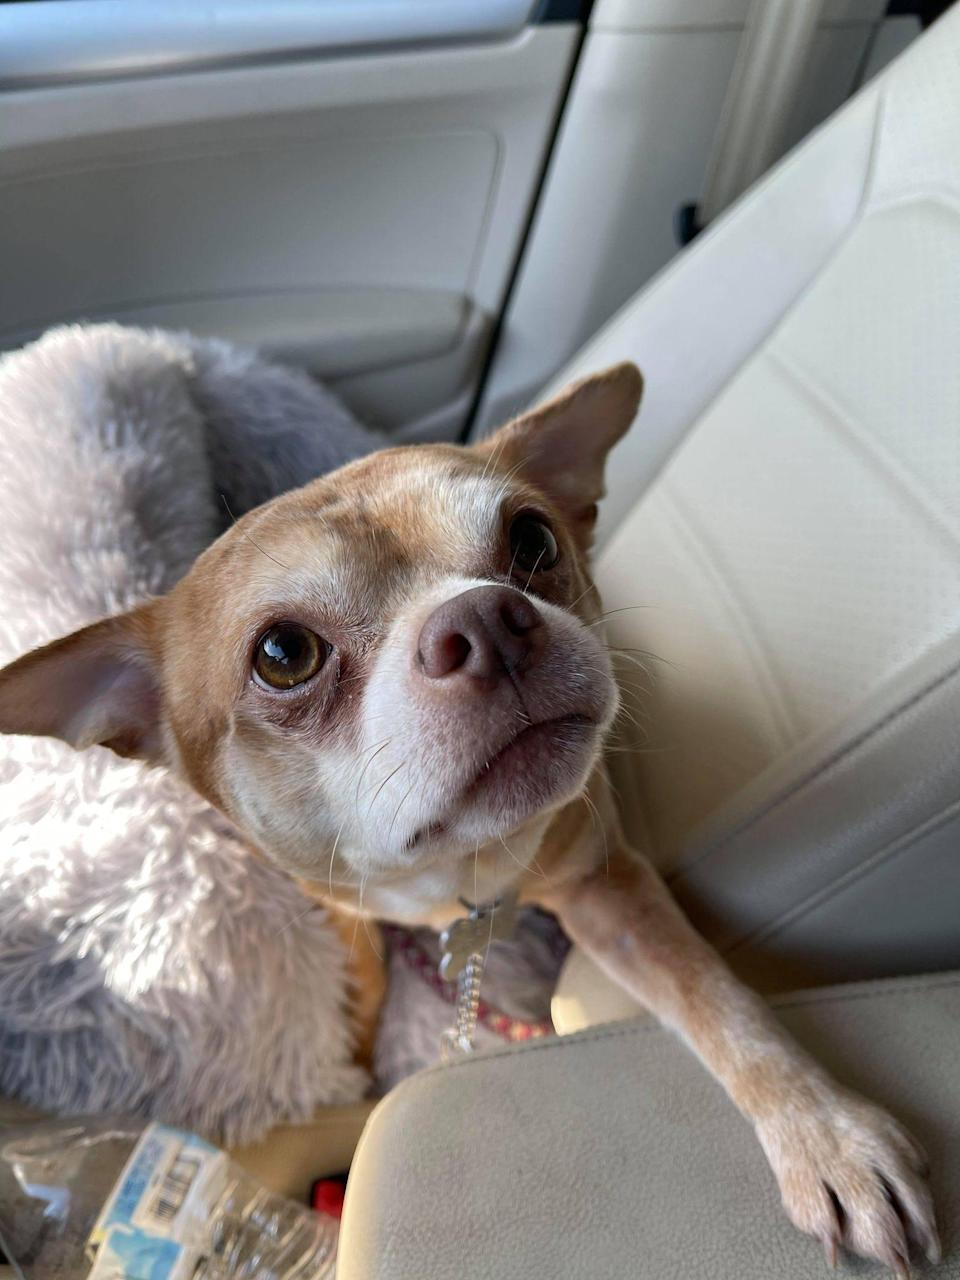 Prancer is a 2-year-old Chihuahua who became famous after his New Jersey foster mom shared his unique quirks on Facebook.